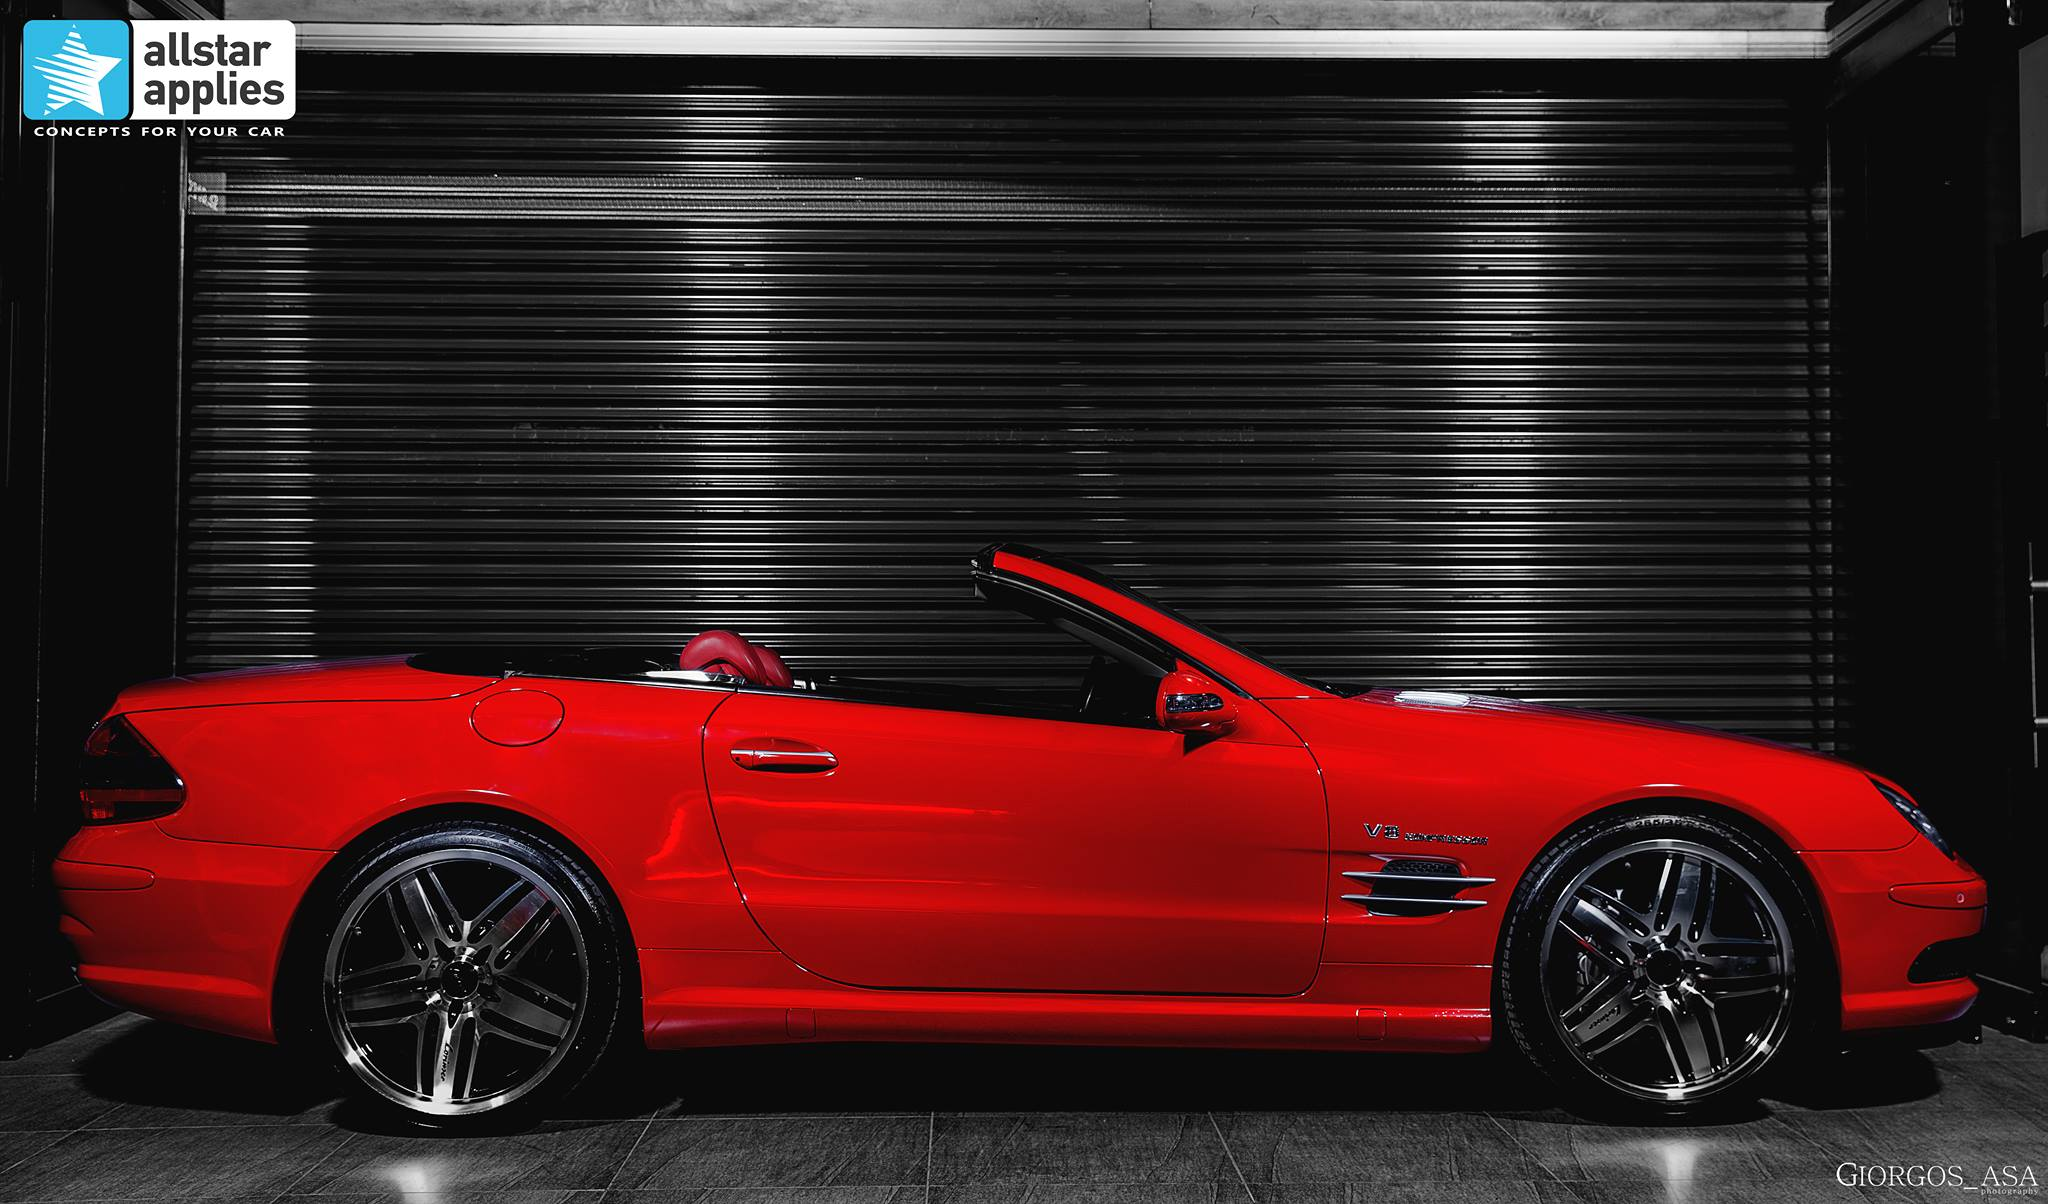 Mercedes SL55 AMG - Red Dark Metallic (6)6